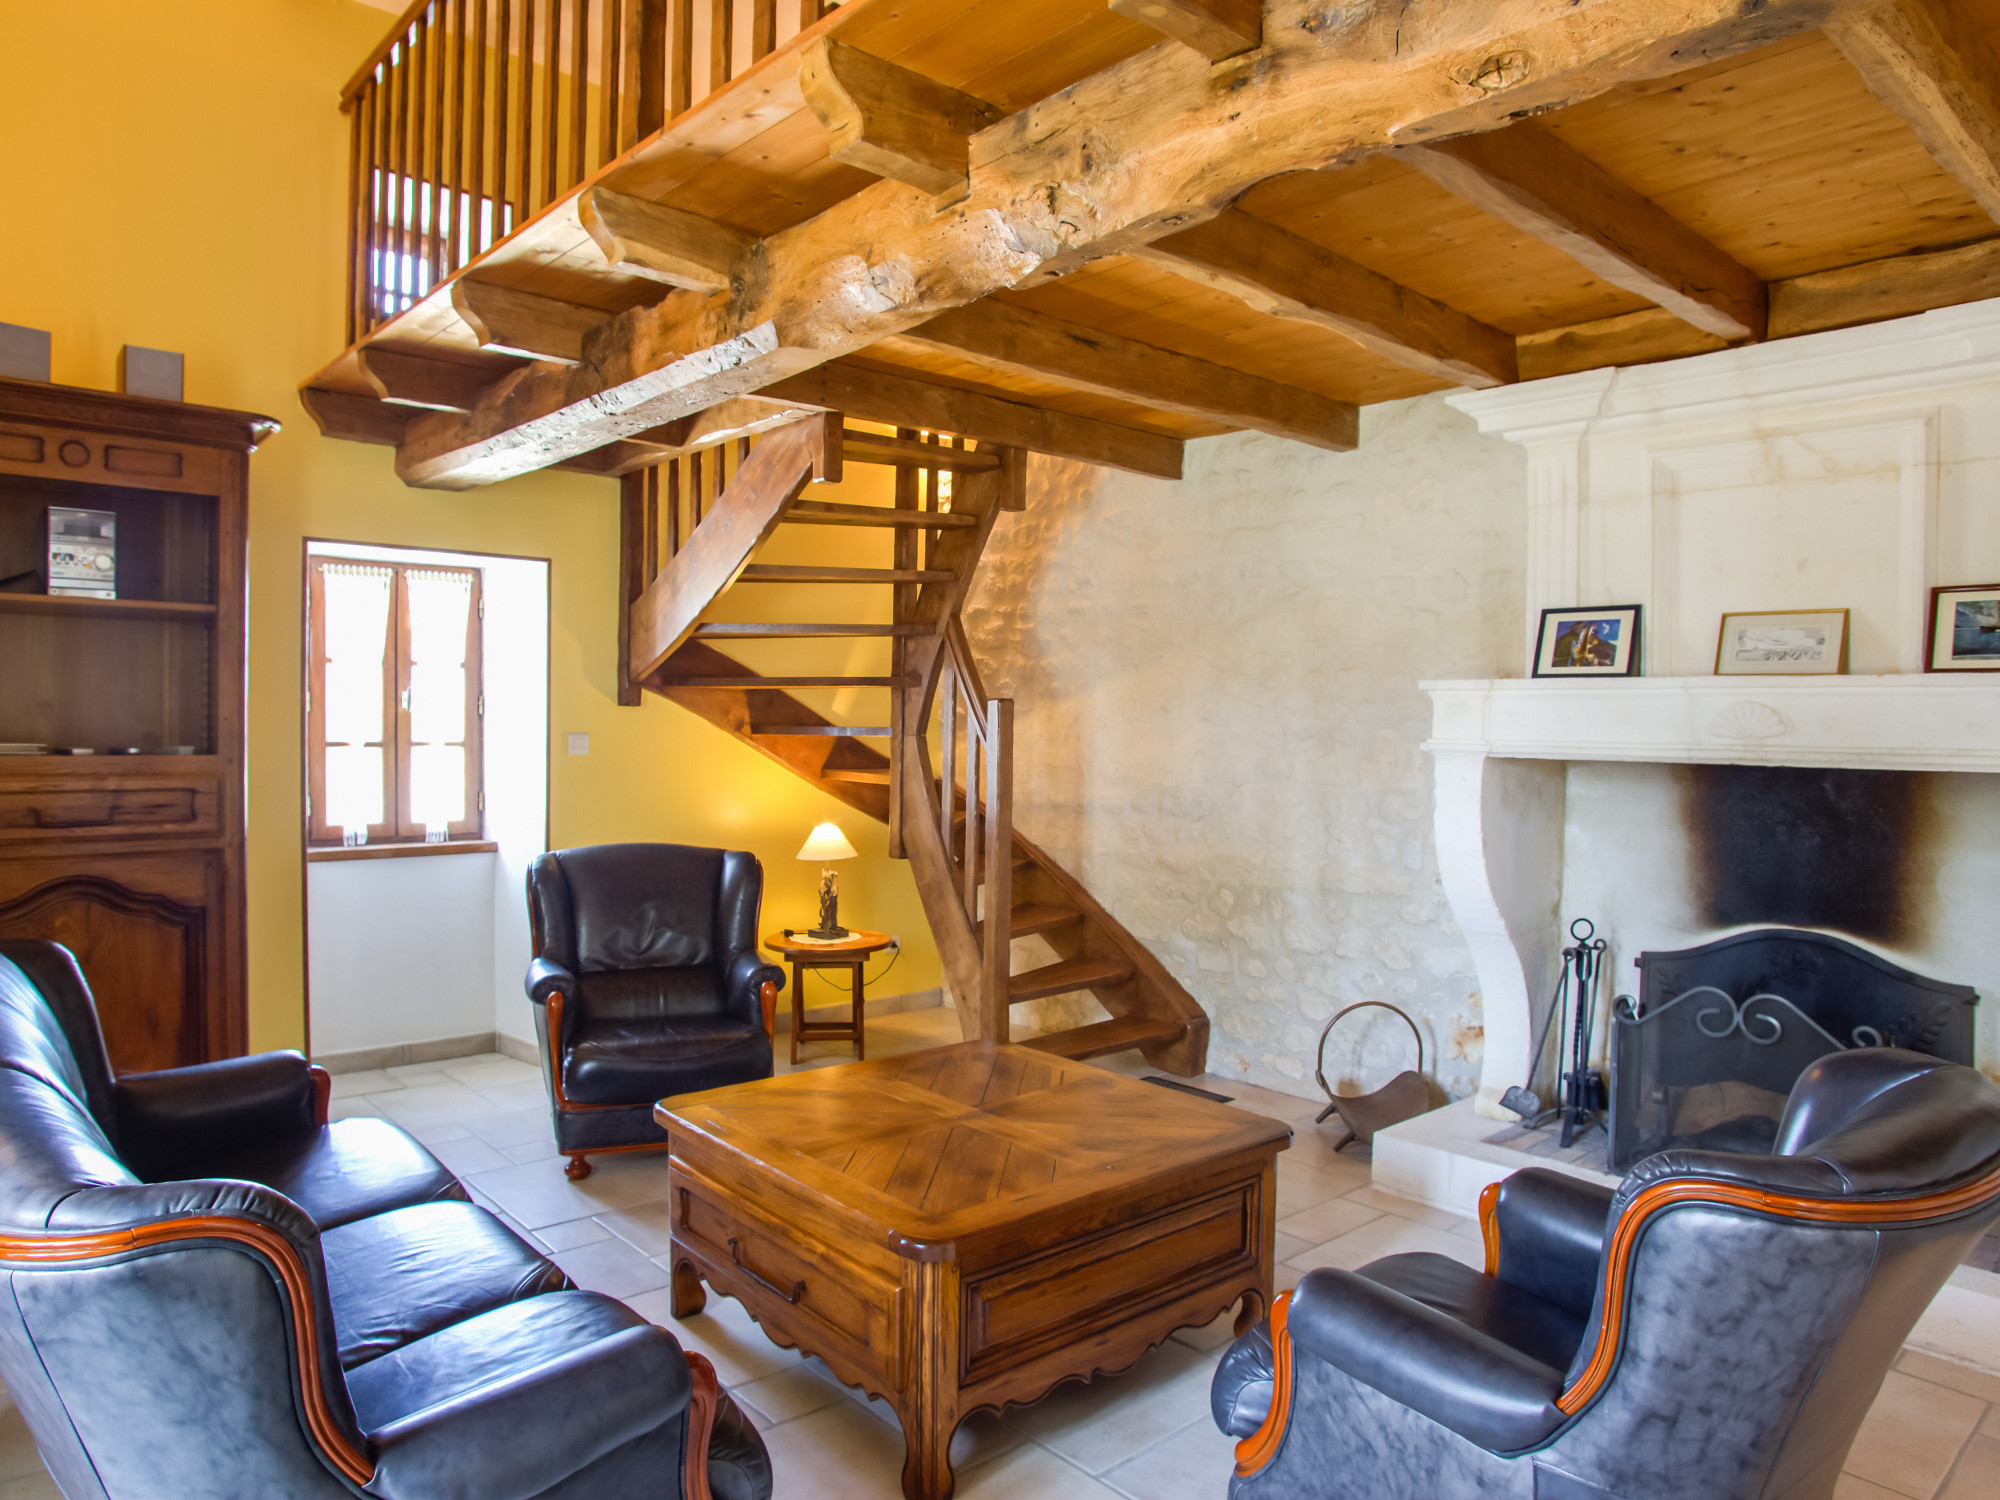 Optimisation web loisirs tourisme locations for Week end chambre d hote de charme